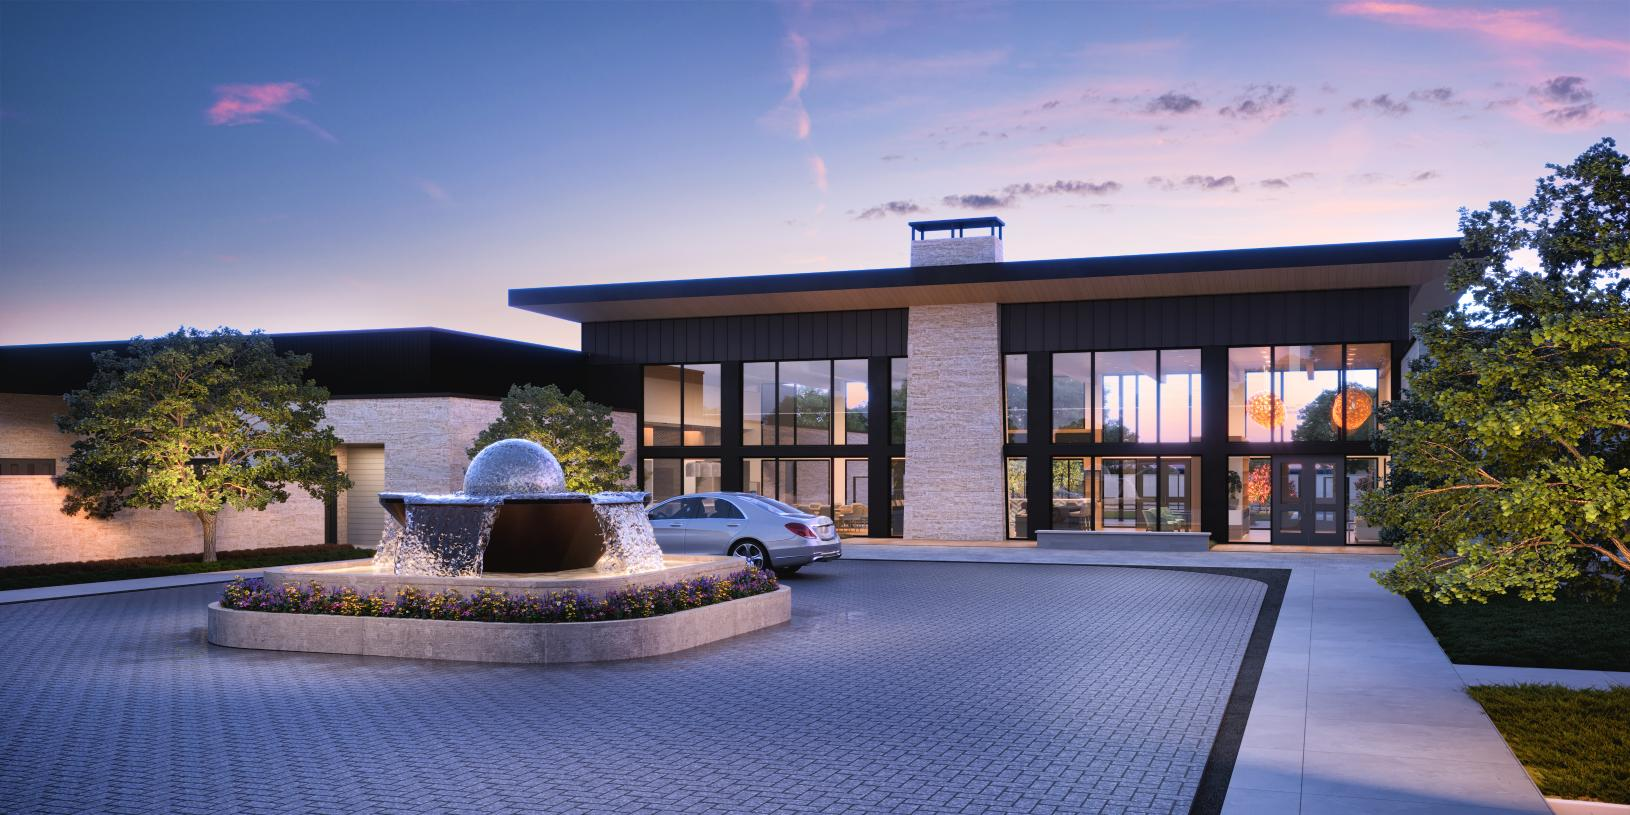 Expansive 18,000-square-foot resort-inspired clubhouse and fitness center